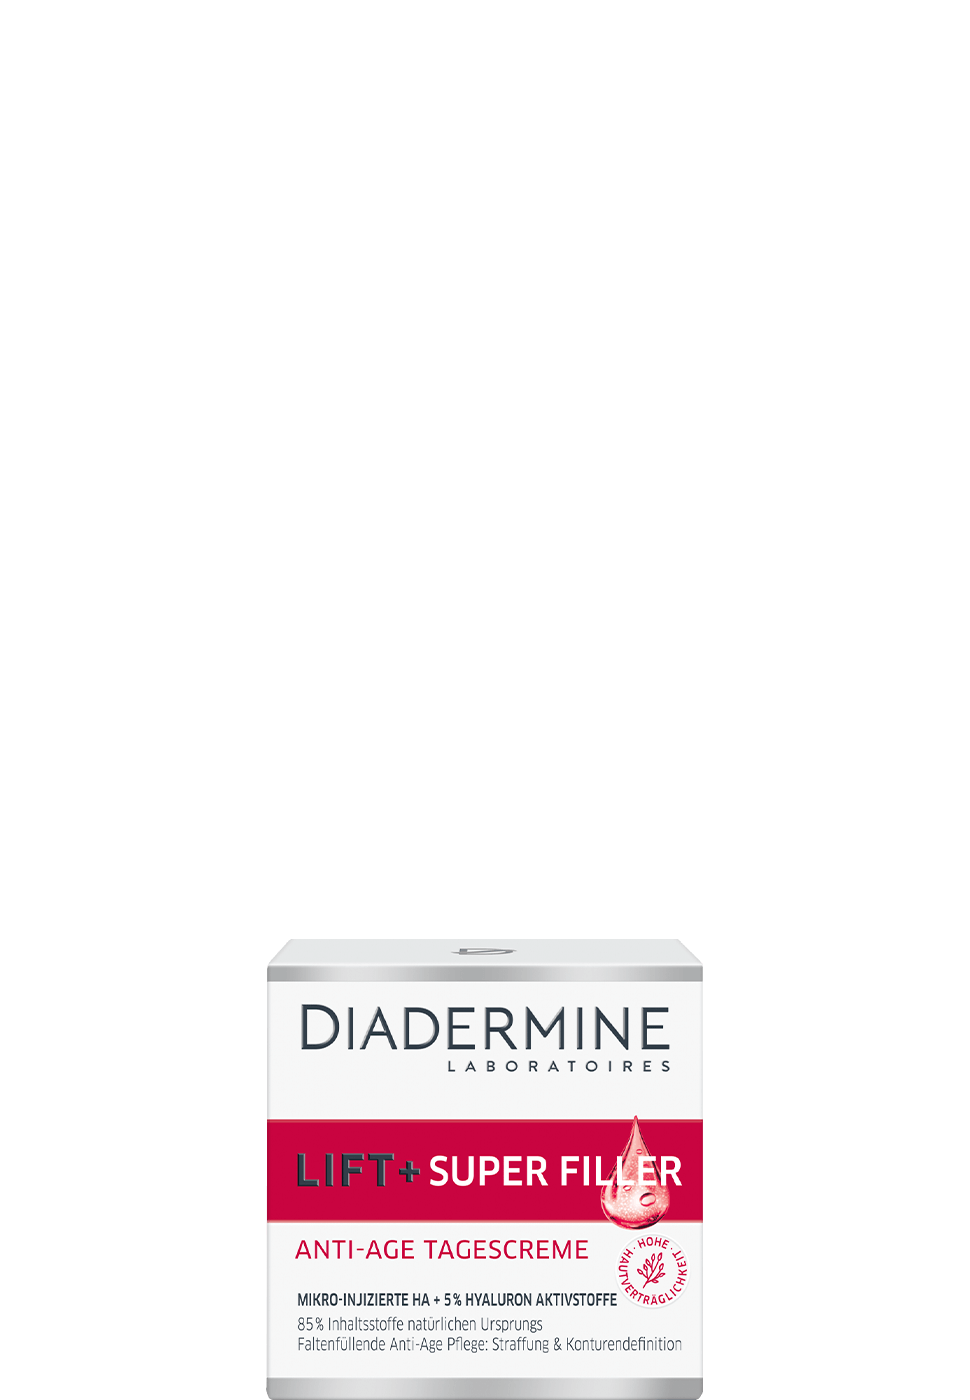 diadermine_de_lift_plus_super_filler_tagescreme_970x1400